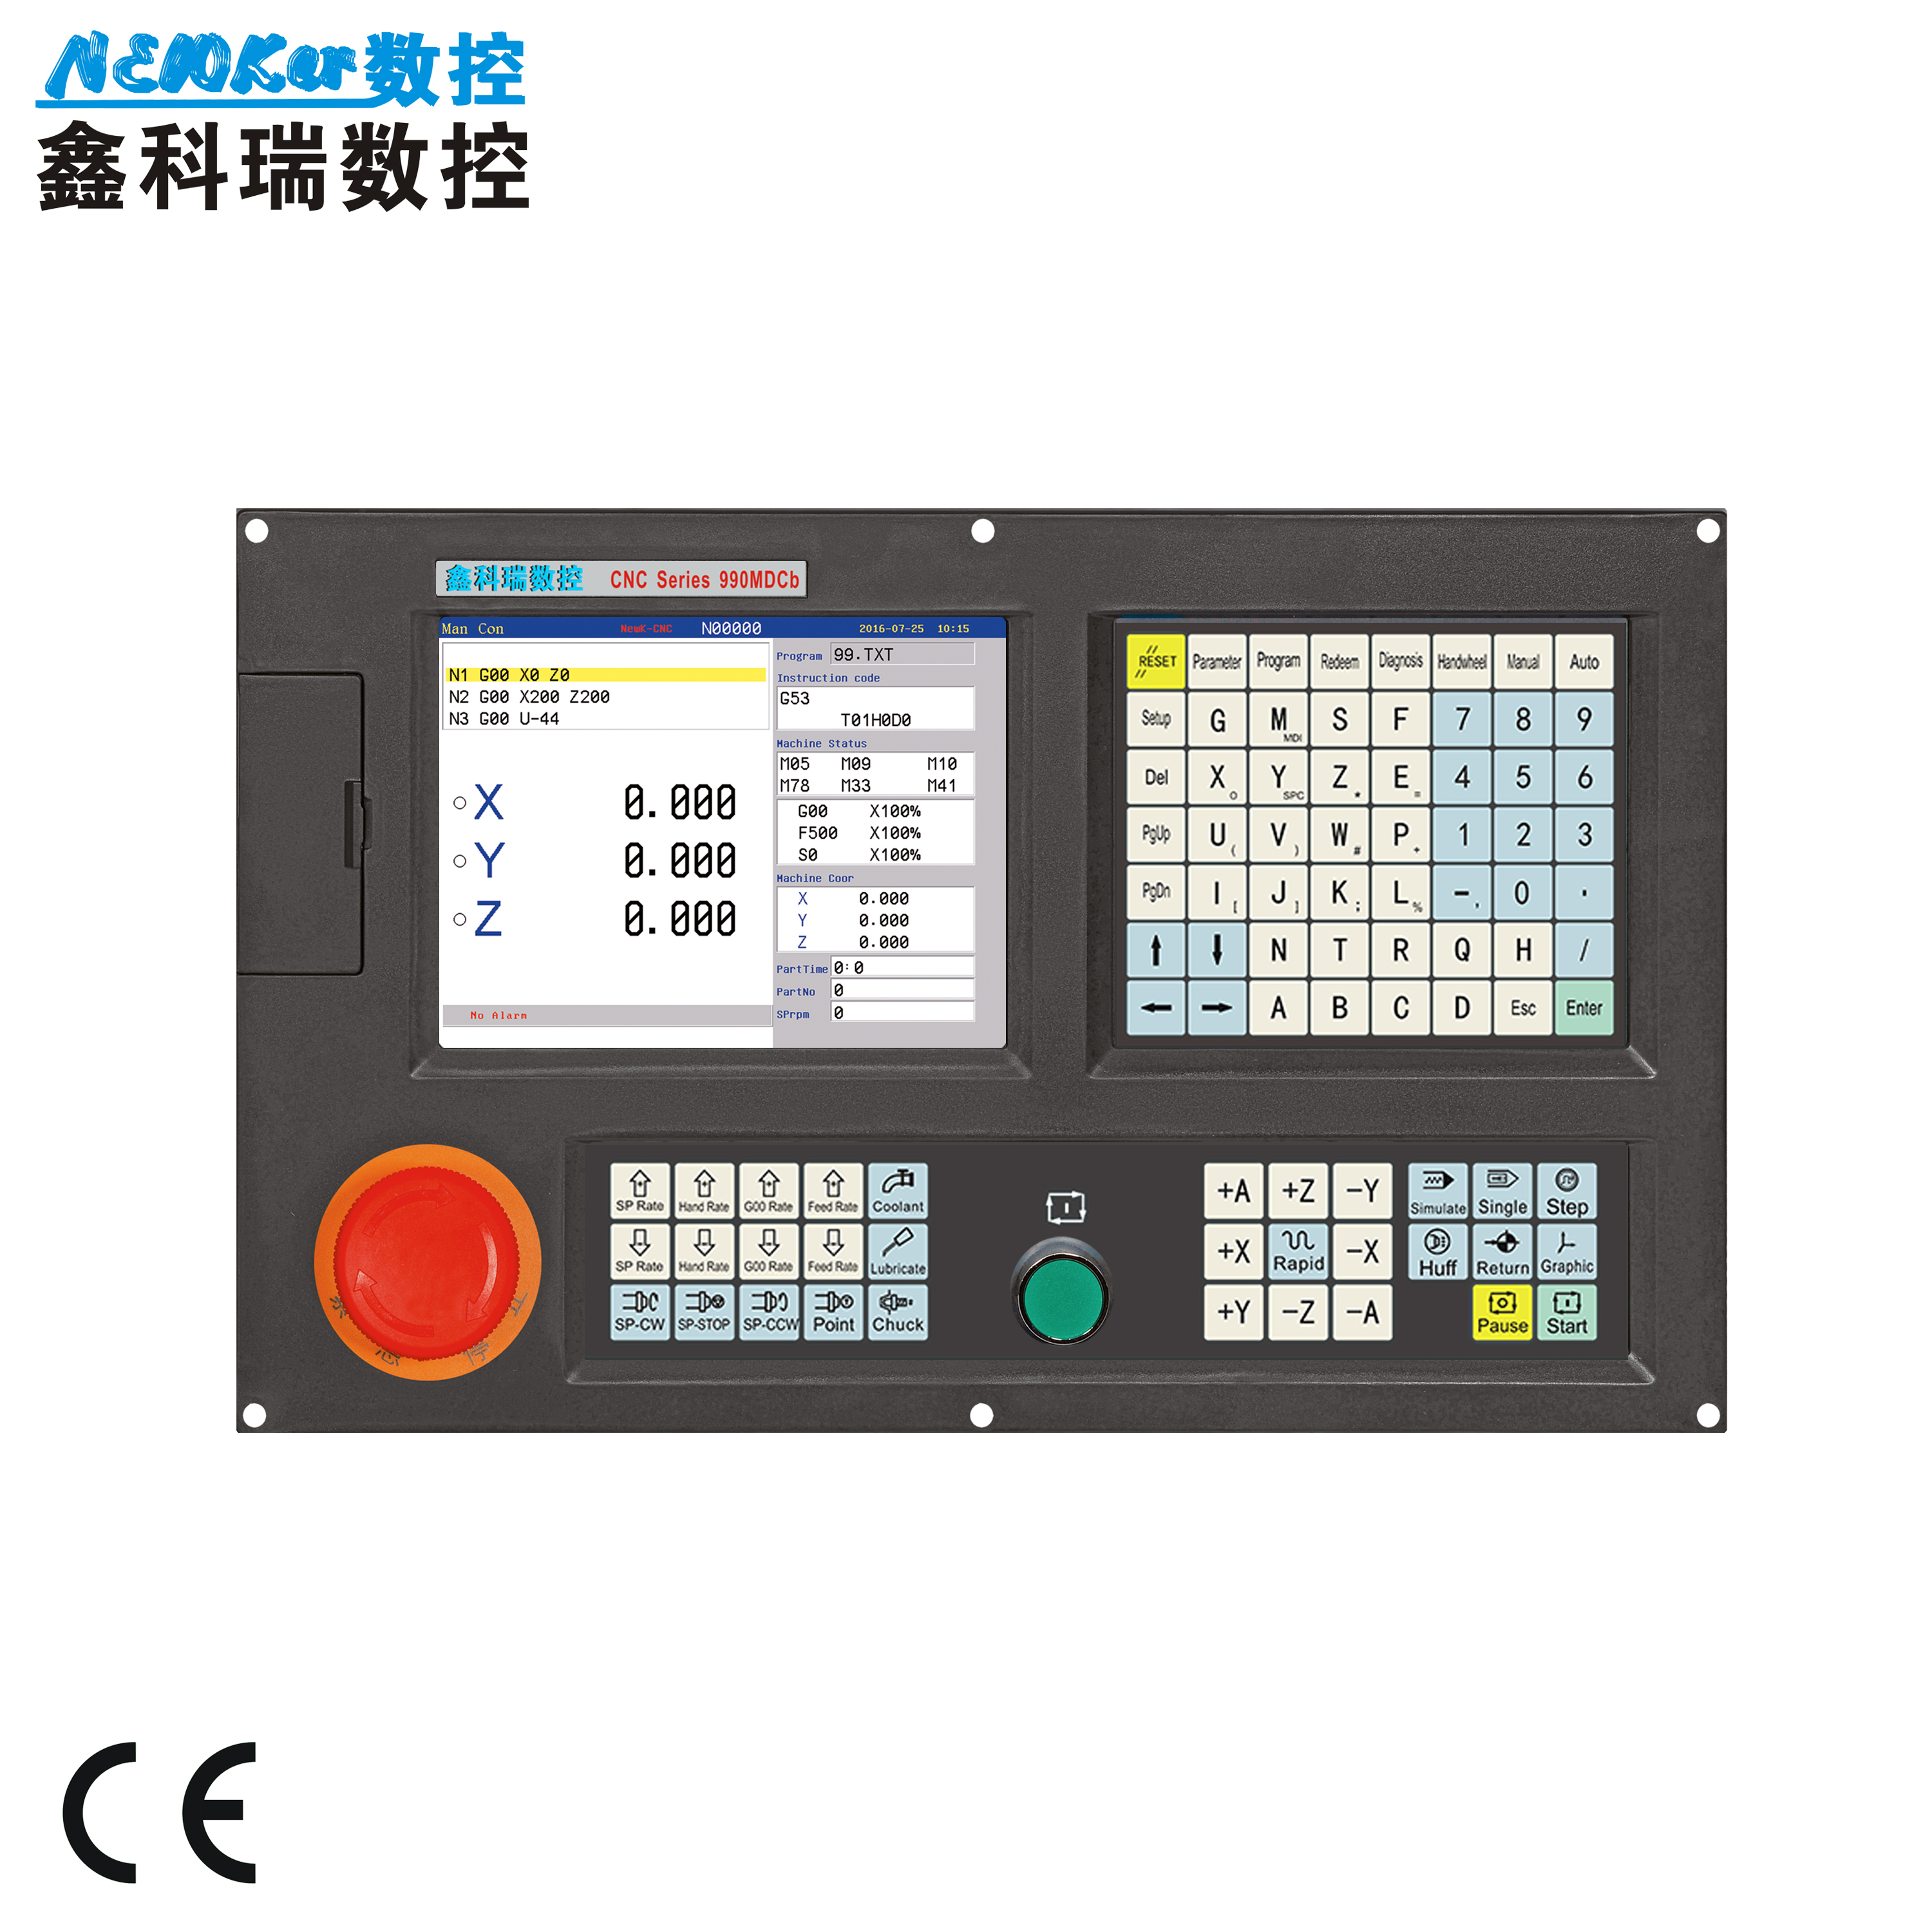 Aliexpress com : Buy Mini type CNC Controller NEW990MDCa 3 Axis for